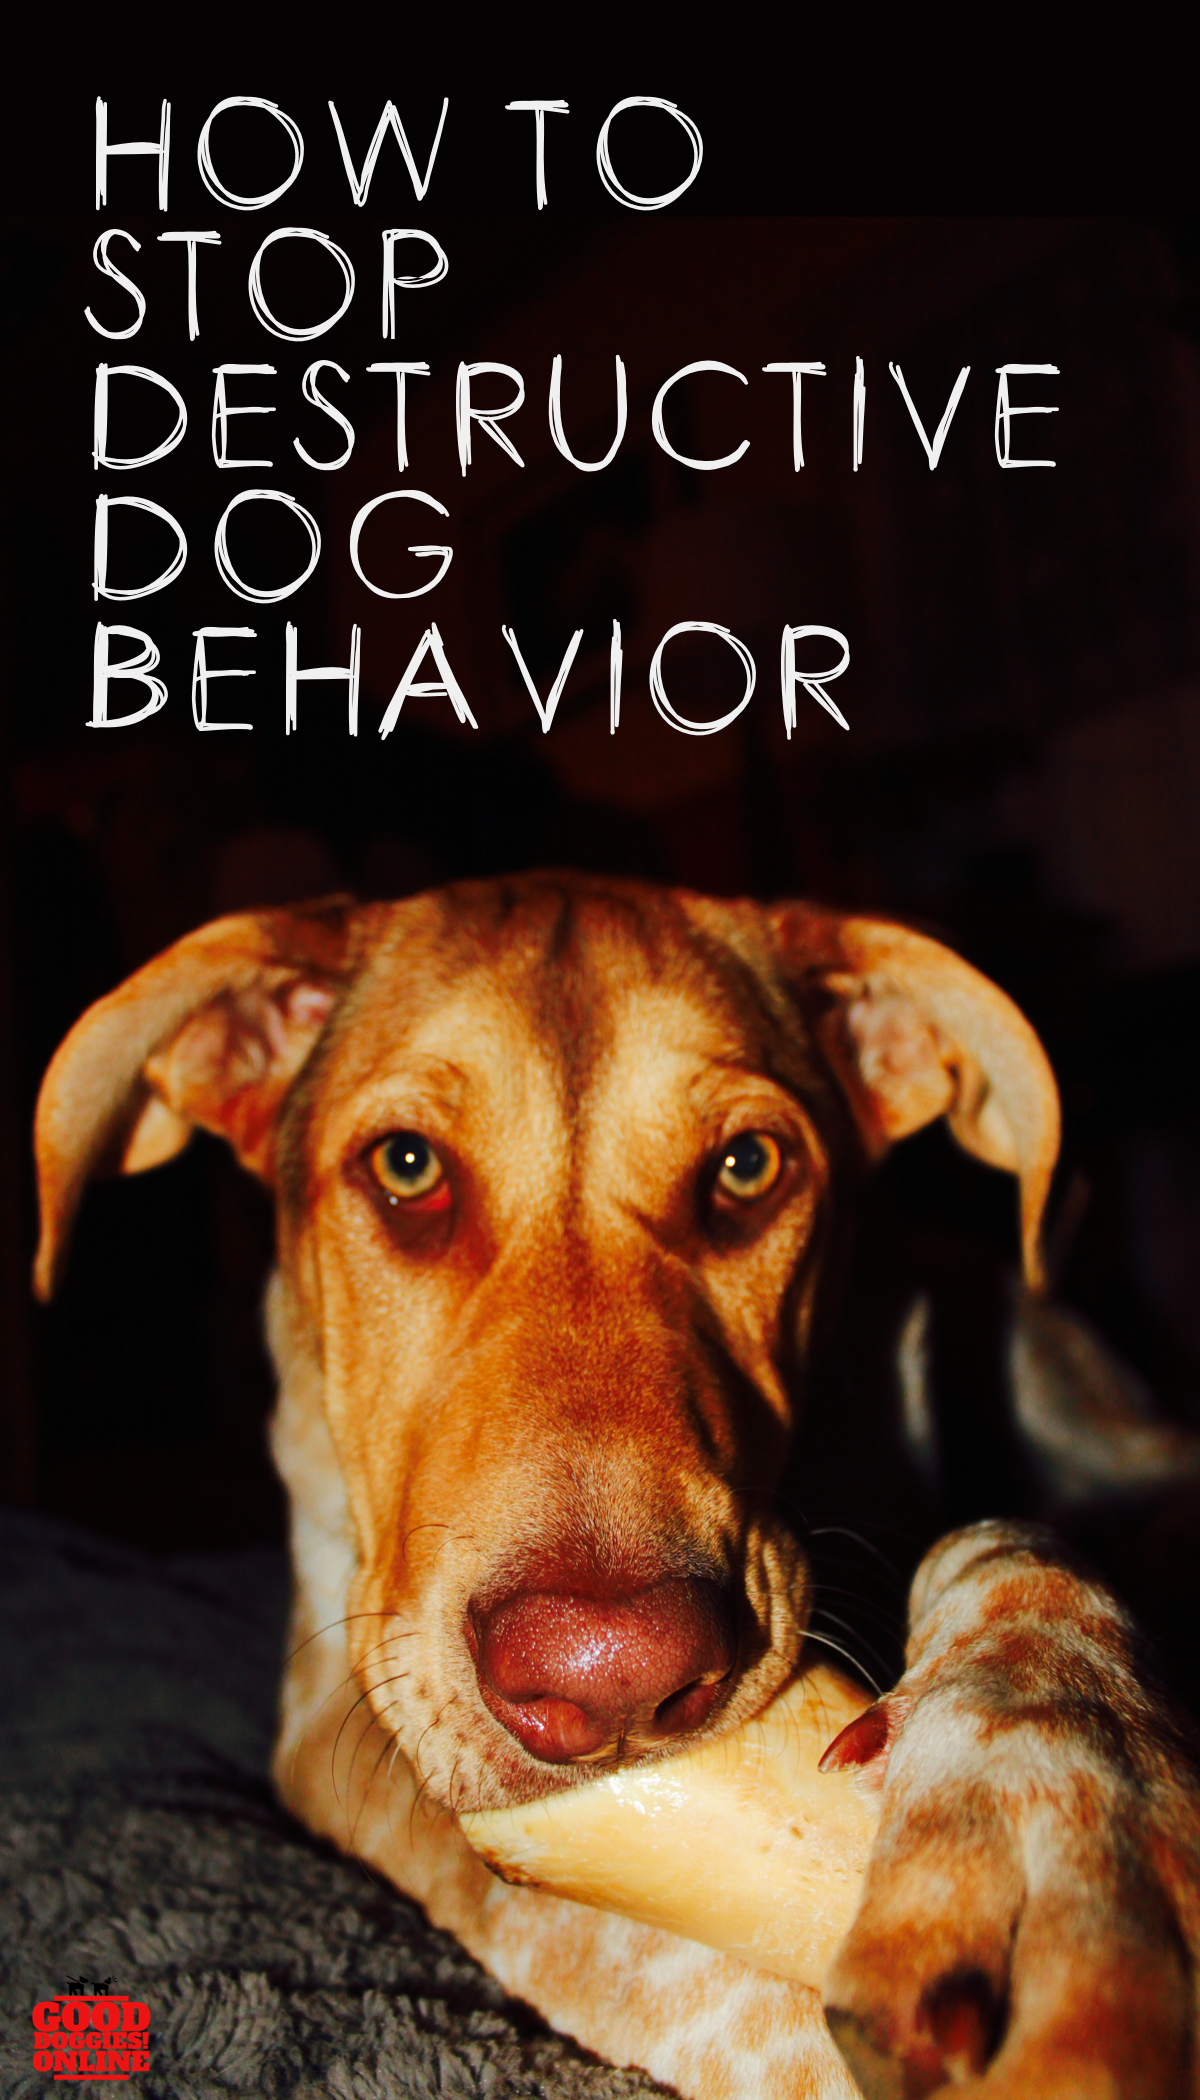 How to Stop Destructive Dog Behavior | The Complete Guide ...